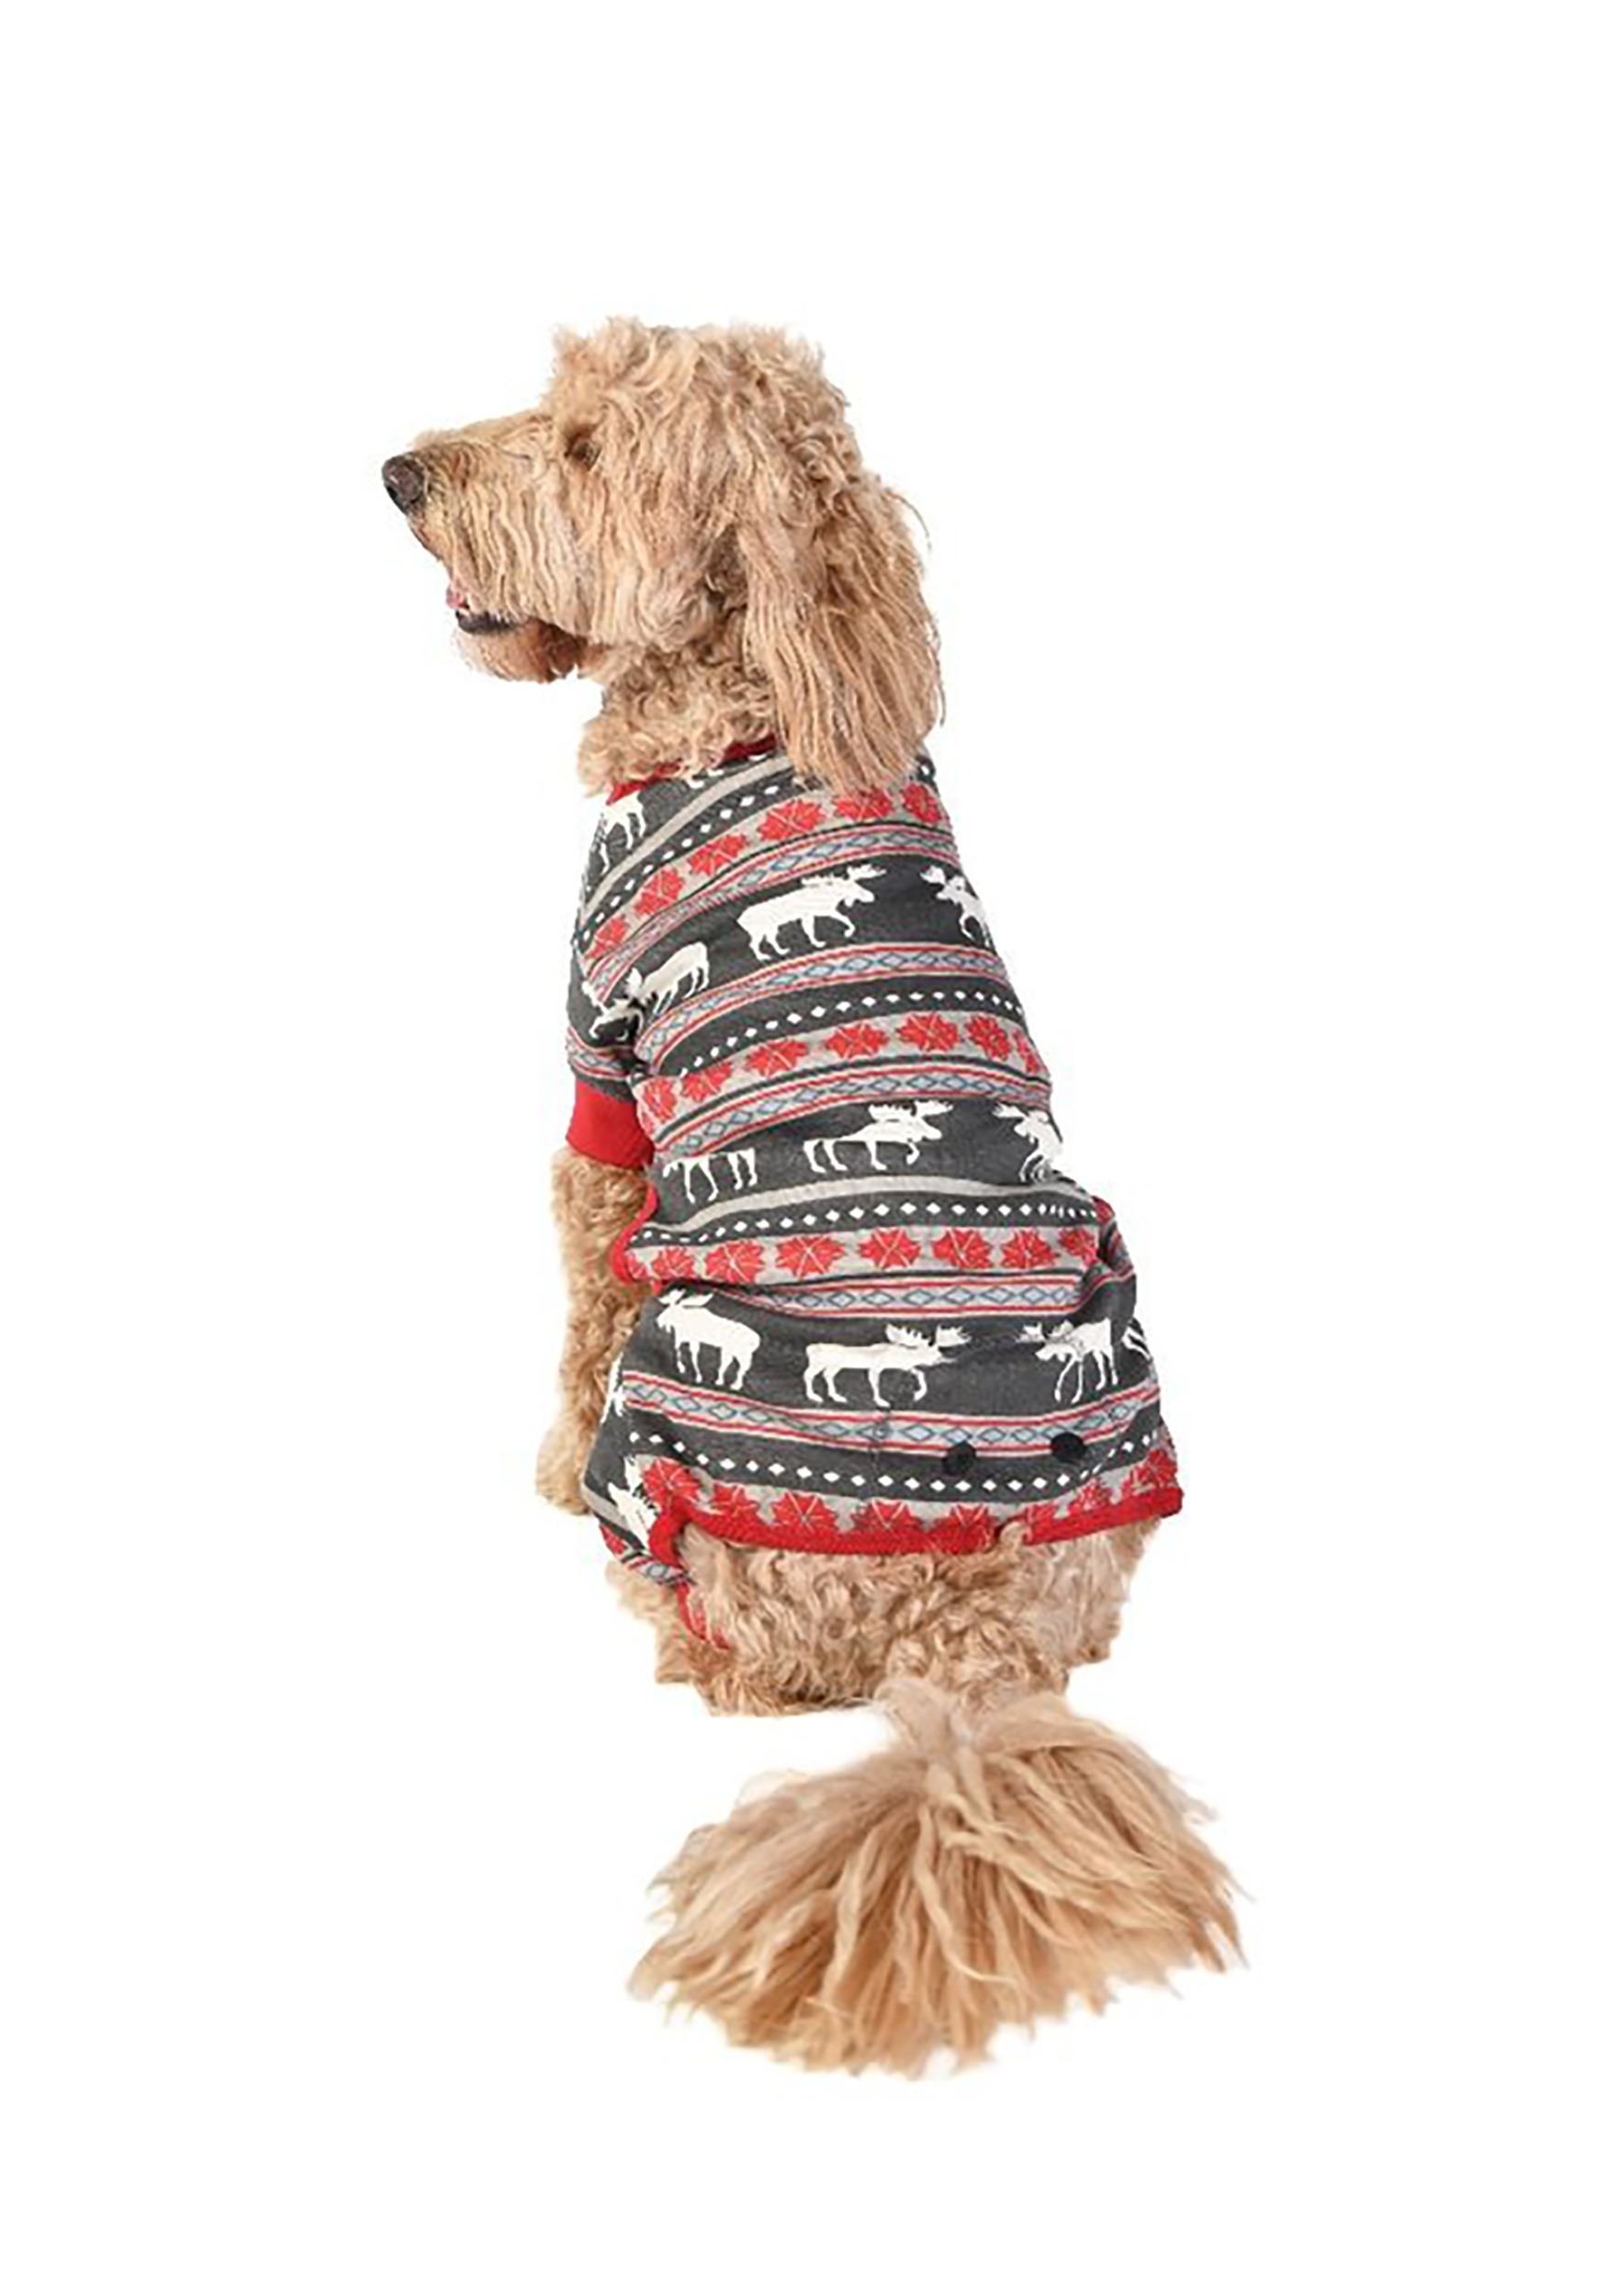 Dog Pajama Pattern Awesome Inspiration Ideas